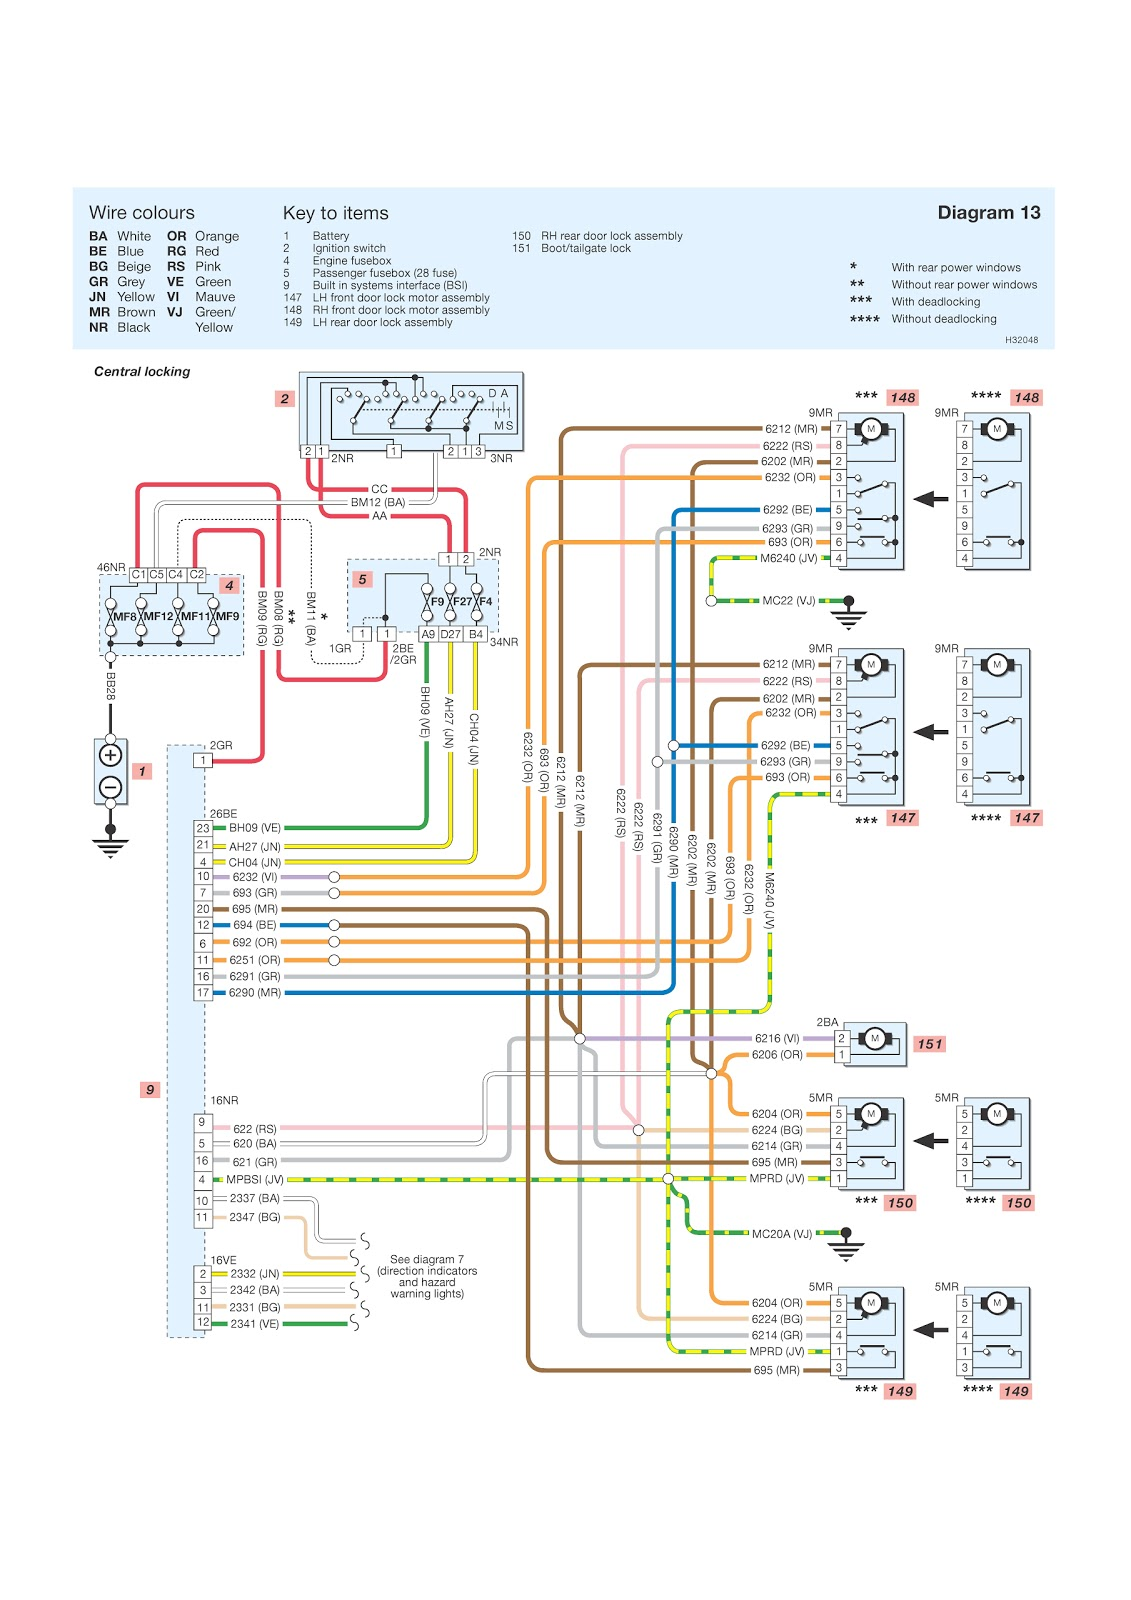 Peugeot 206 Fuse Box Central Locking Wiring Diagrams Ac Diagram For And Relays